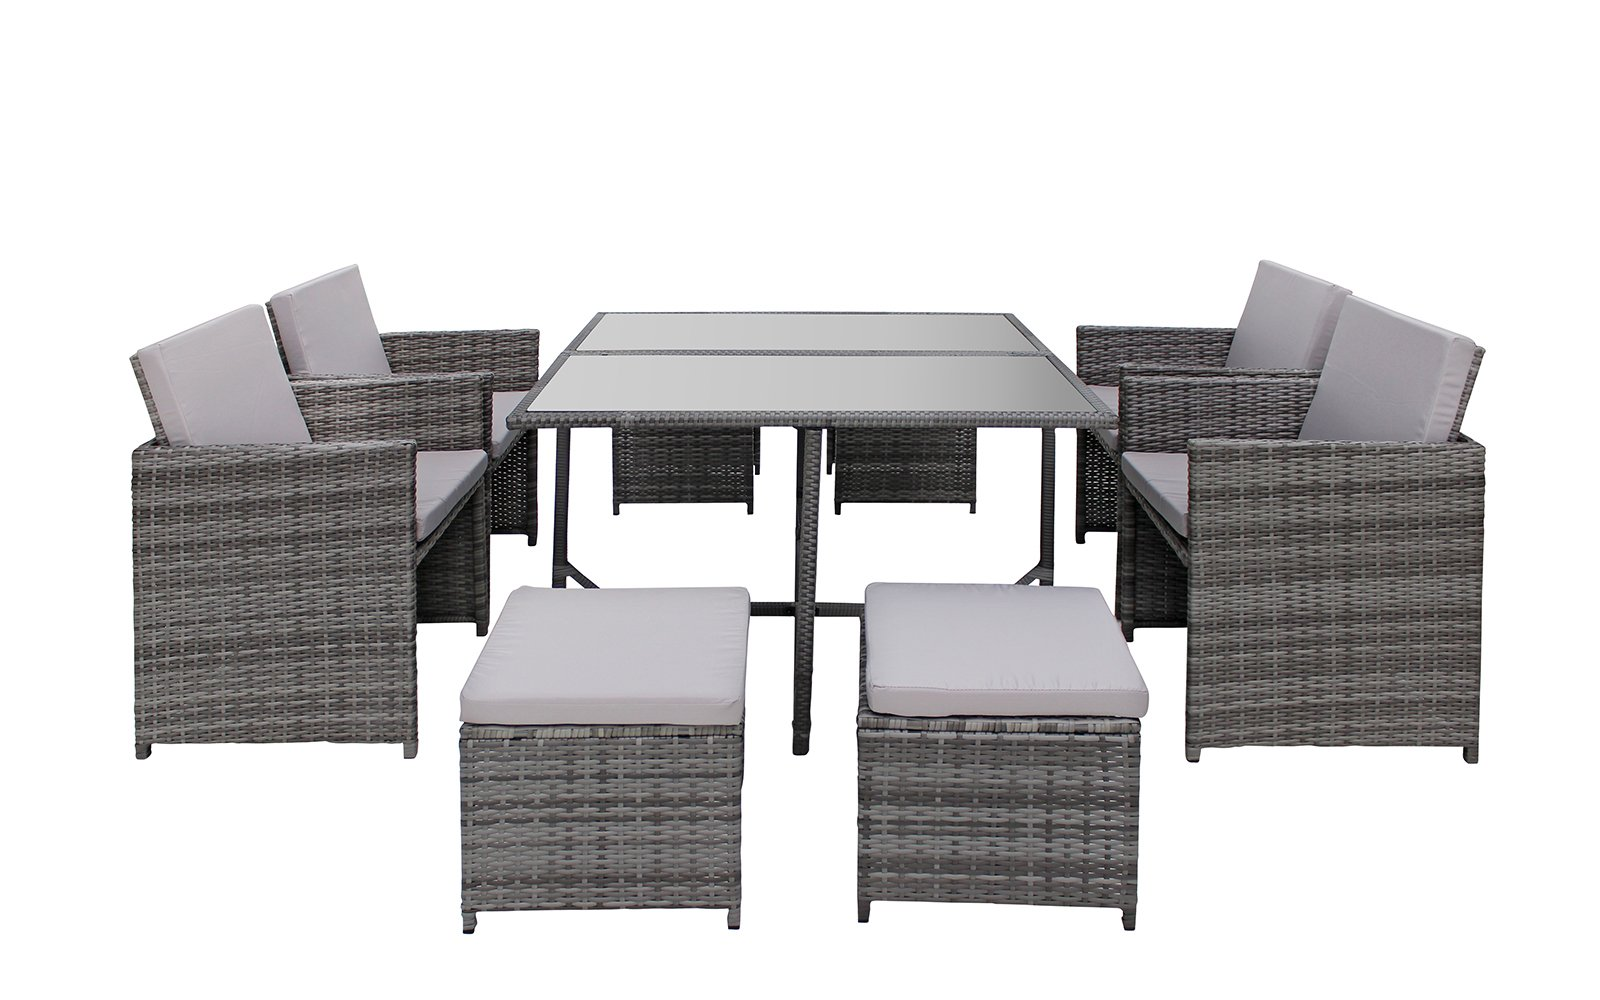 Modern 8 Piece Space Saving Outdoor Furniture Dining Set, Patio Rattan Table and Chairs Set (Grey/Grey)